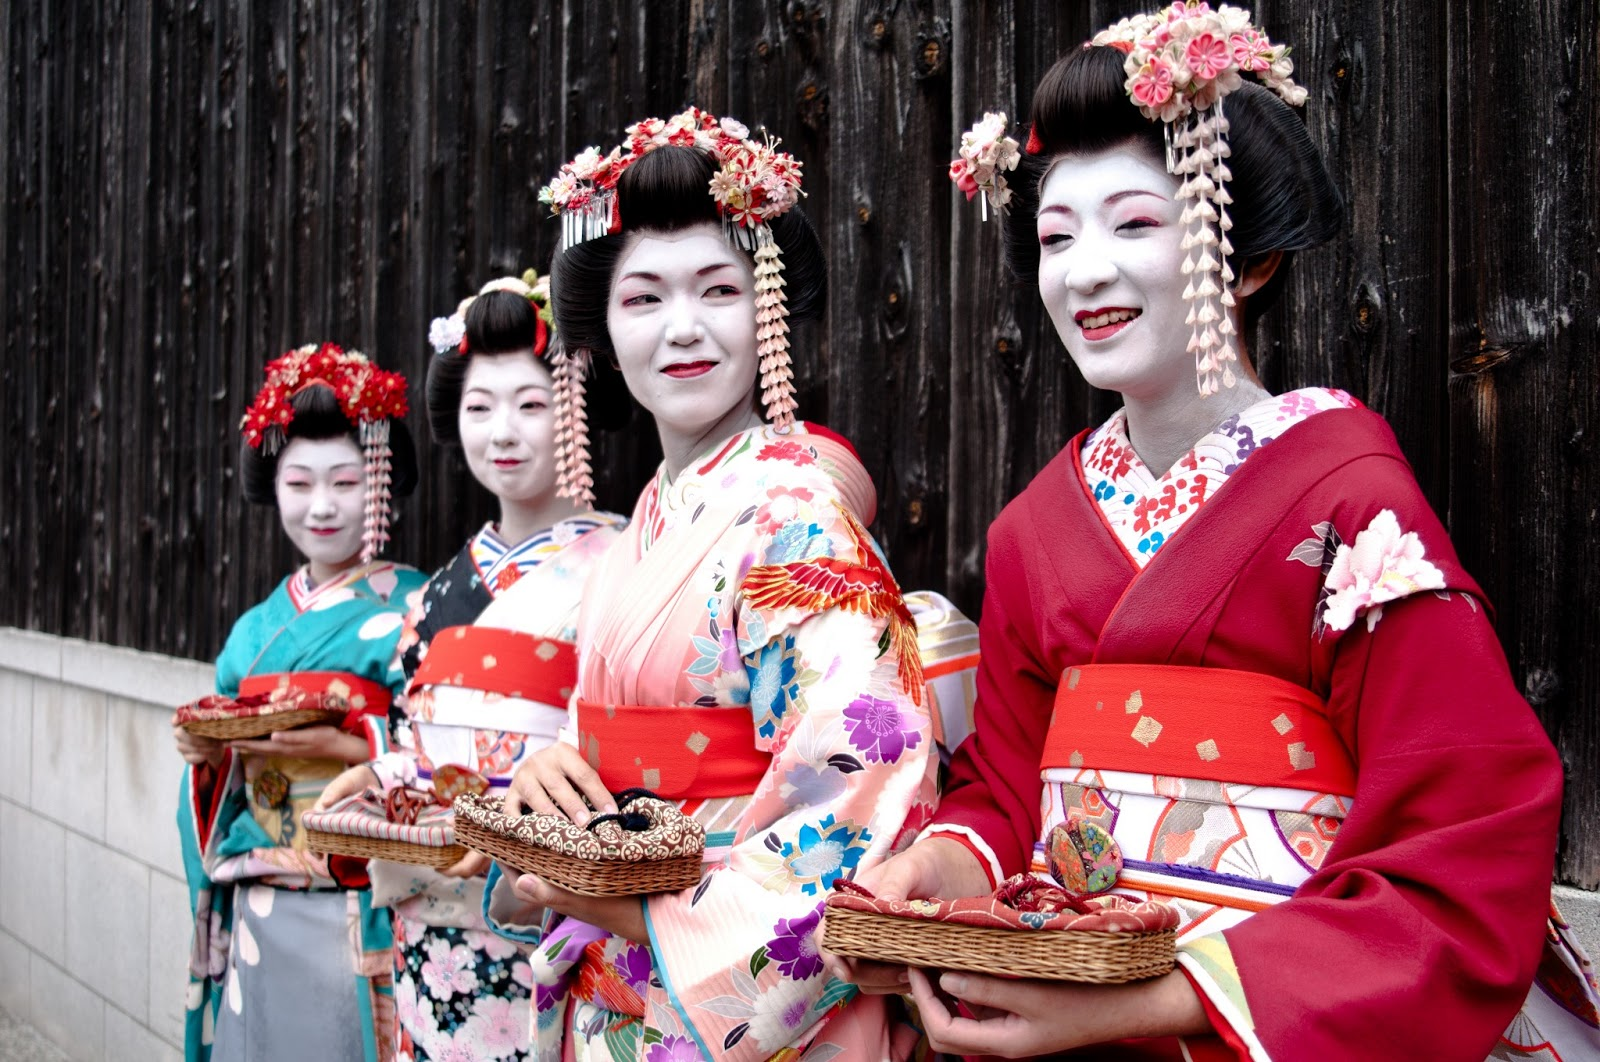 5 Interesting Facts About Japanese Culture